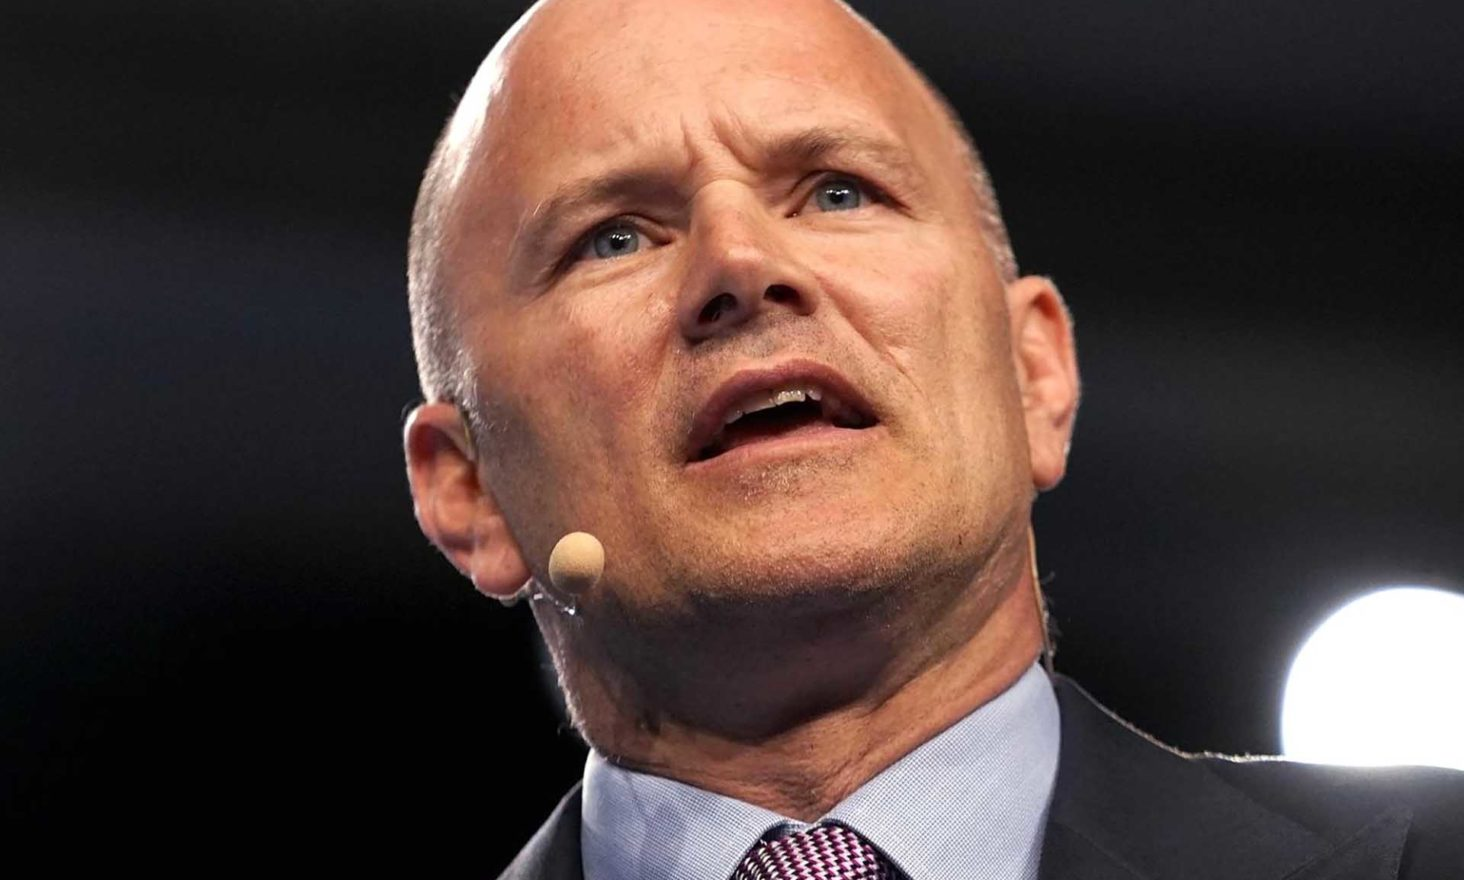 Bitcoin To $10,000 In 6 Weeks? Easy, Novogratz Tells Bloomberg